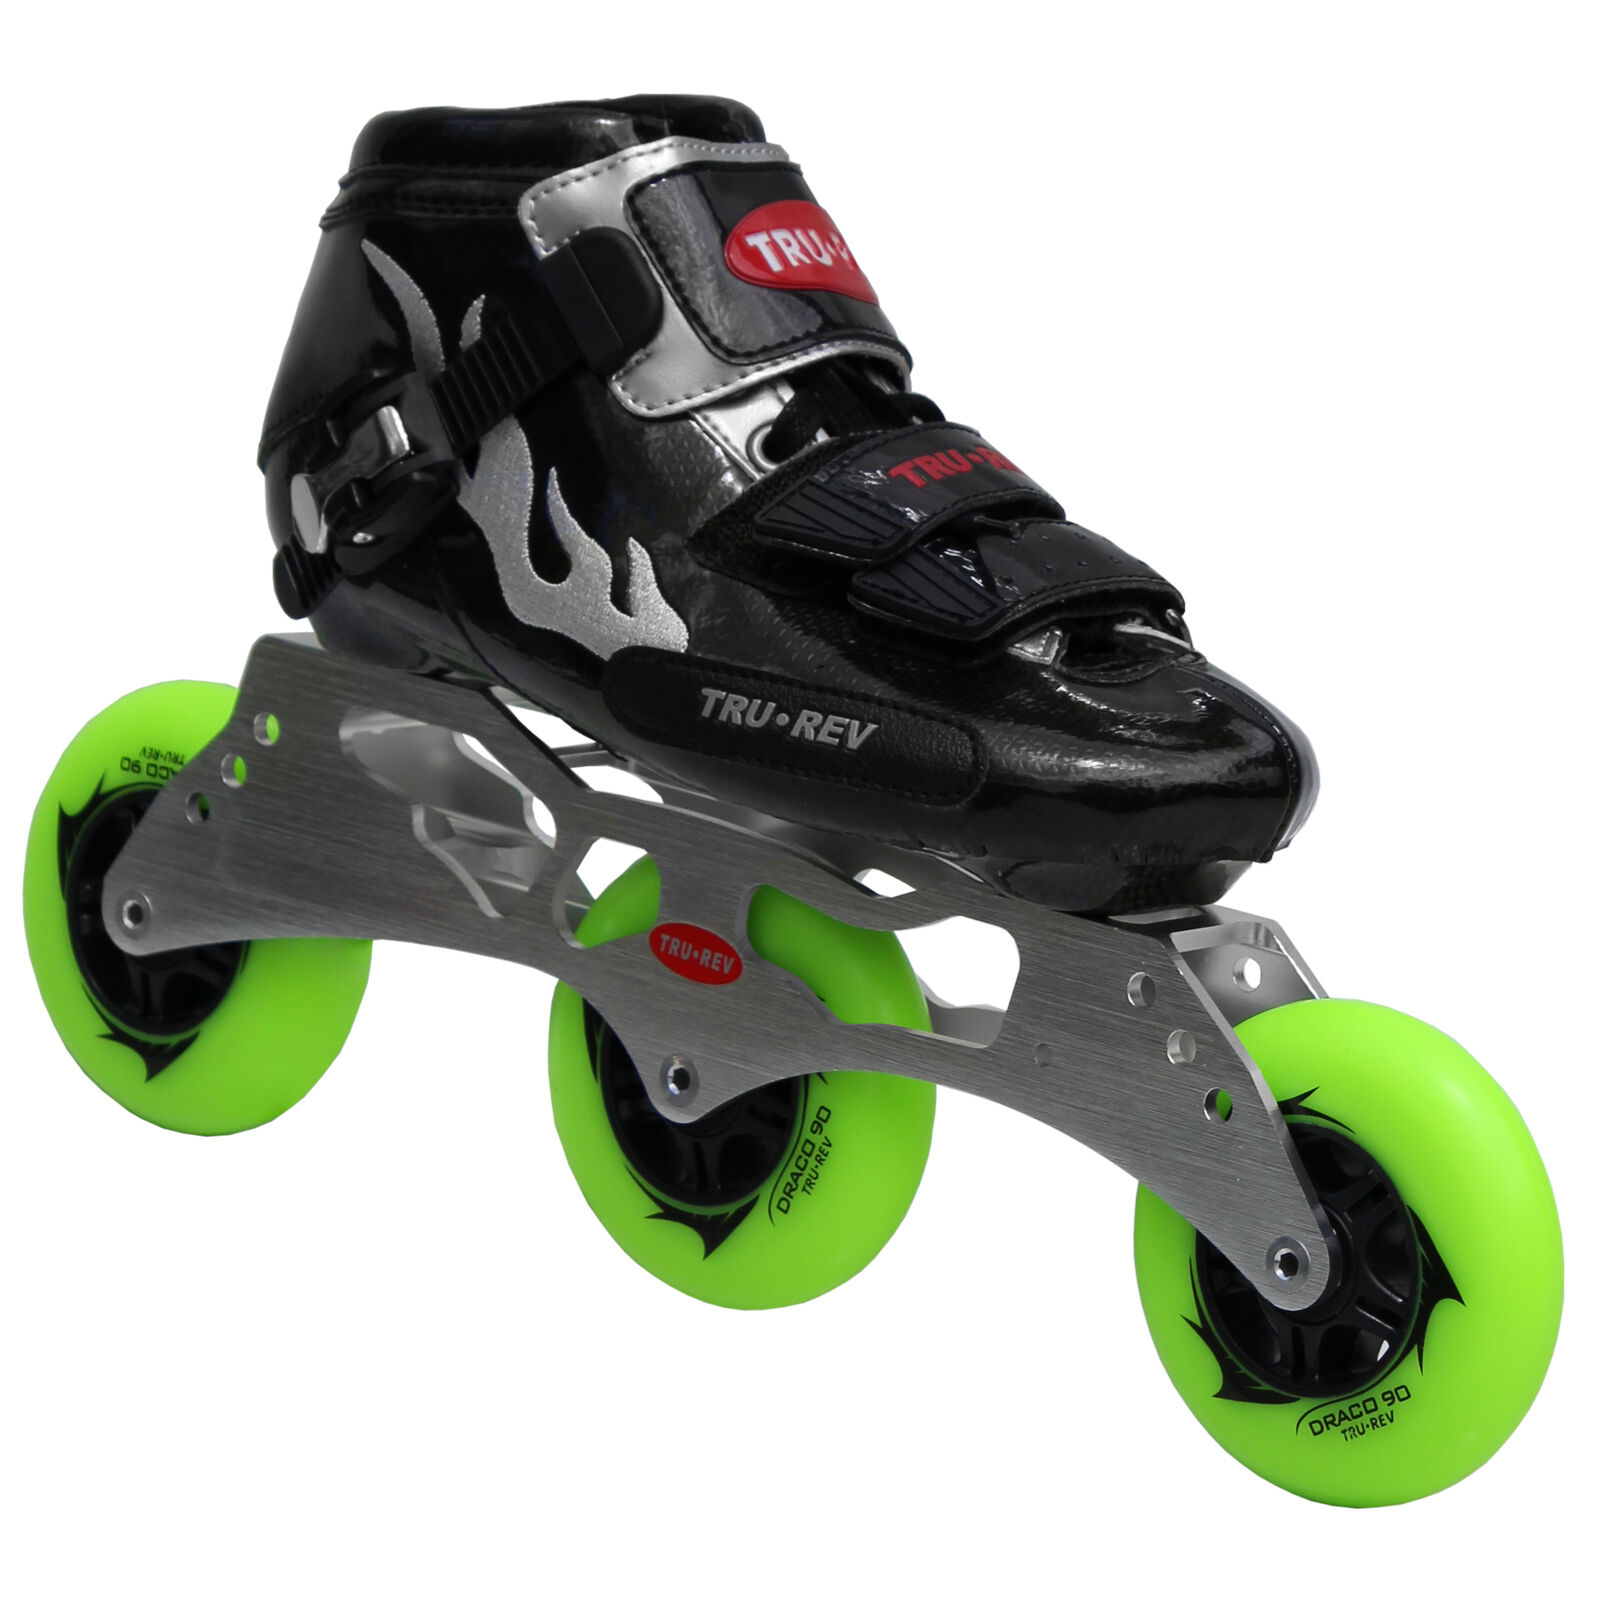 Inline Speed Skates by Trurev. 3 skate frame,ceramic bearings